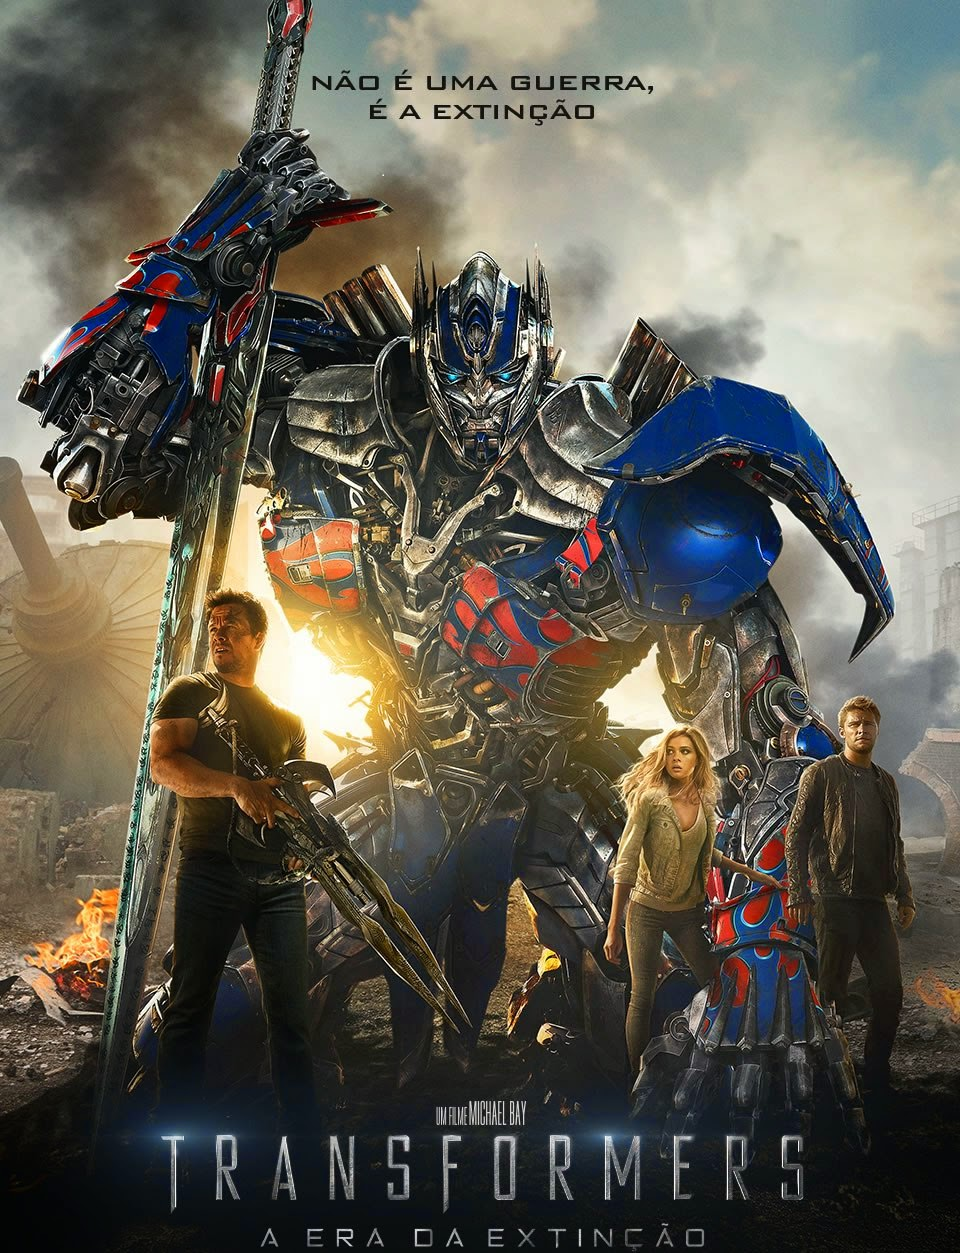 Transformers 4: A Era da Extinção (2014) BRrip Blu-Ray 1080p Download Torrent Dublado